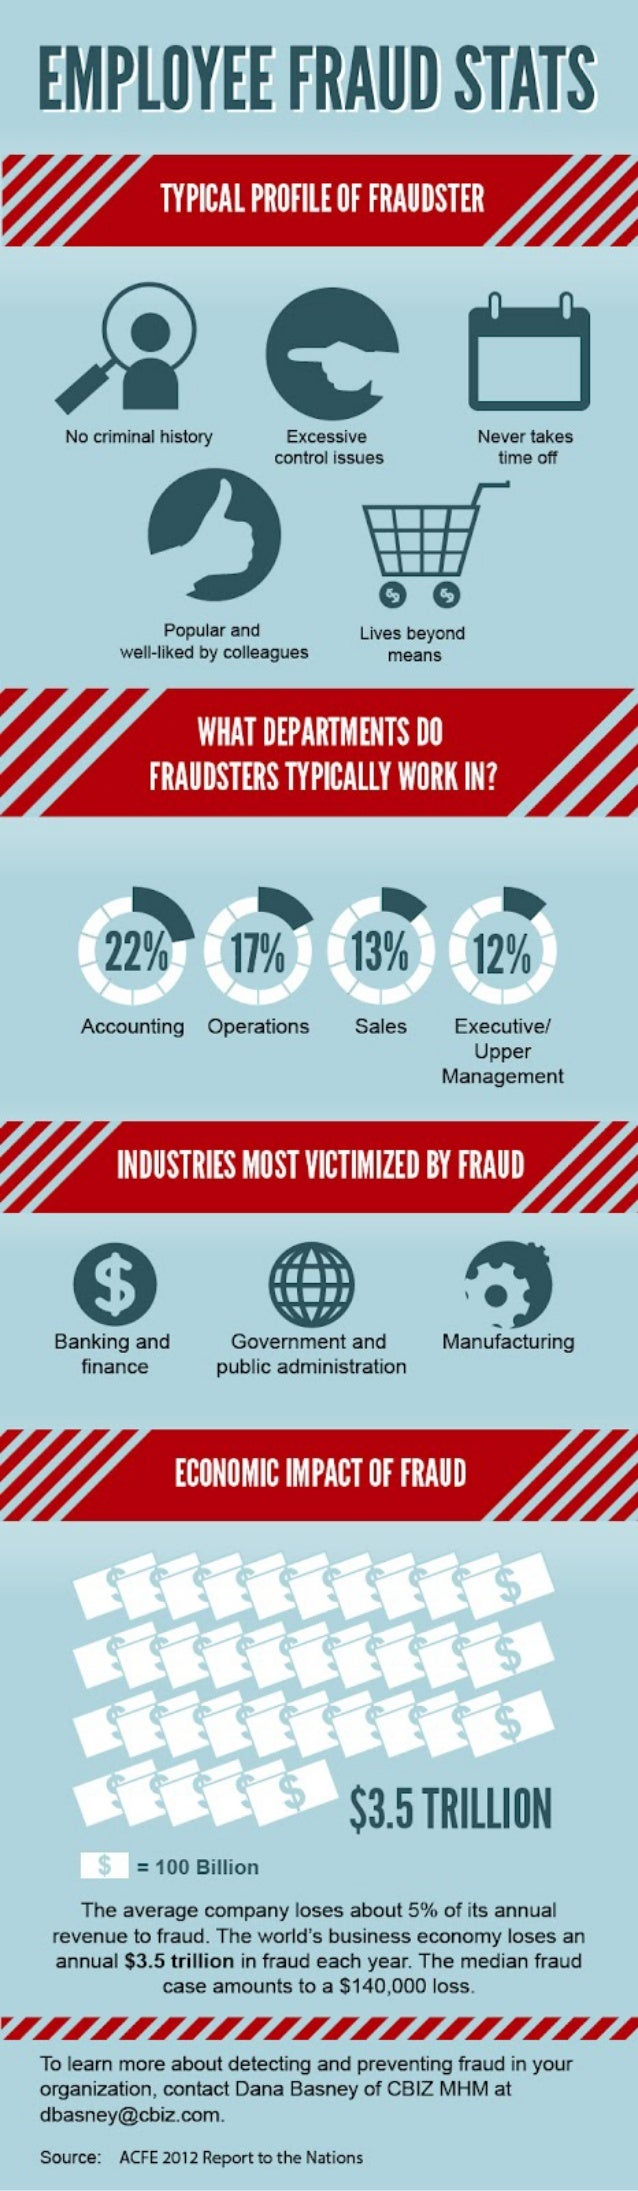 Preventing workplace fraud by employees